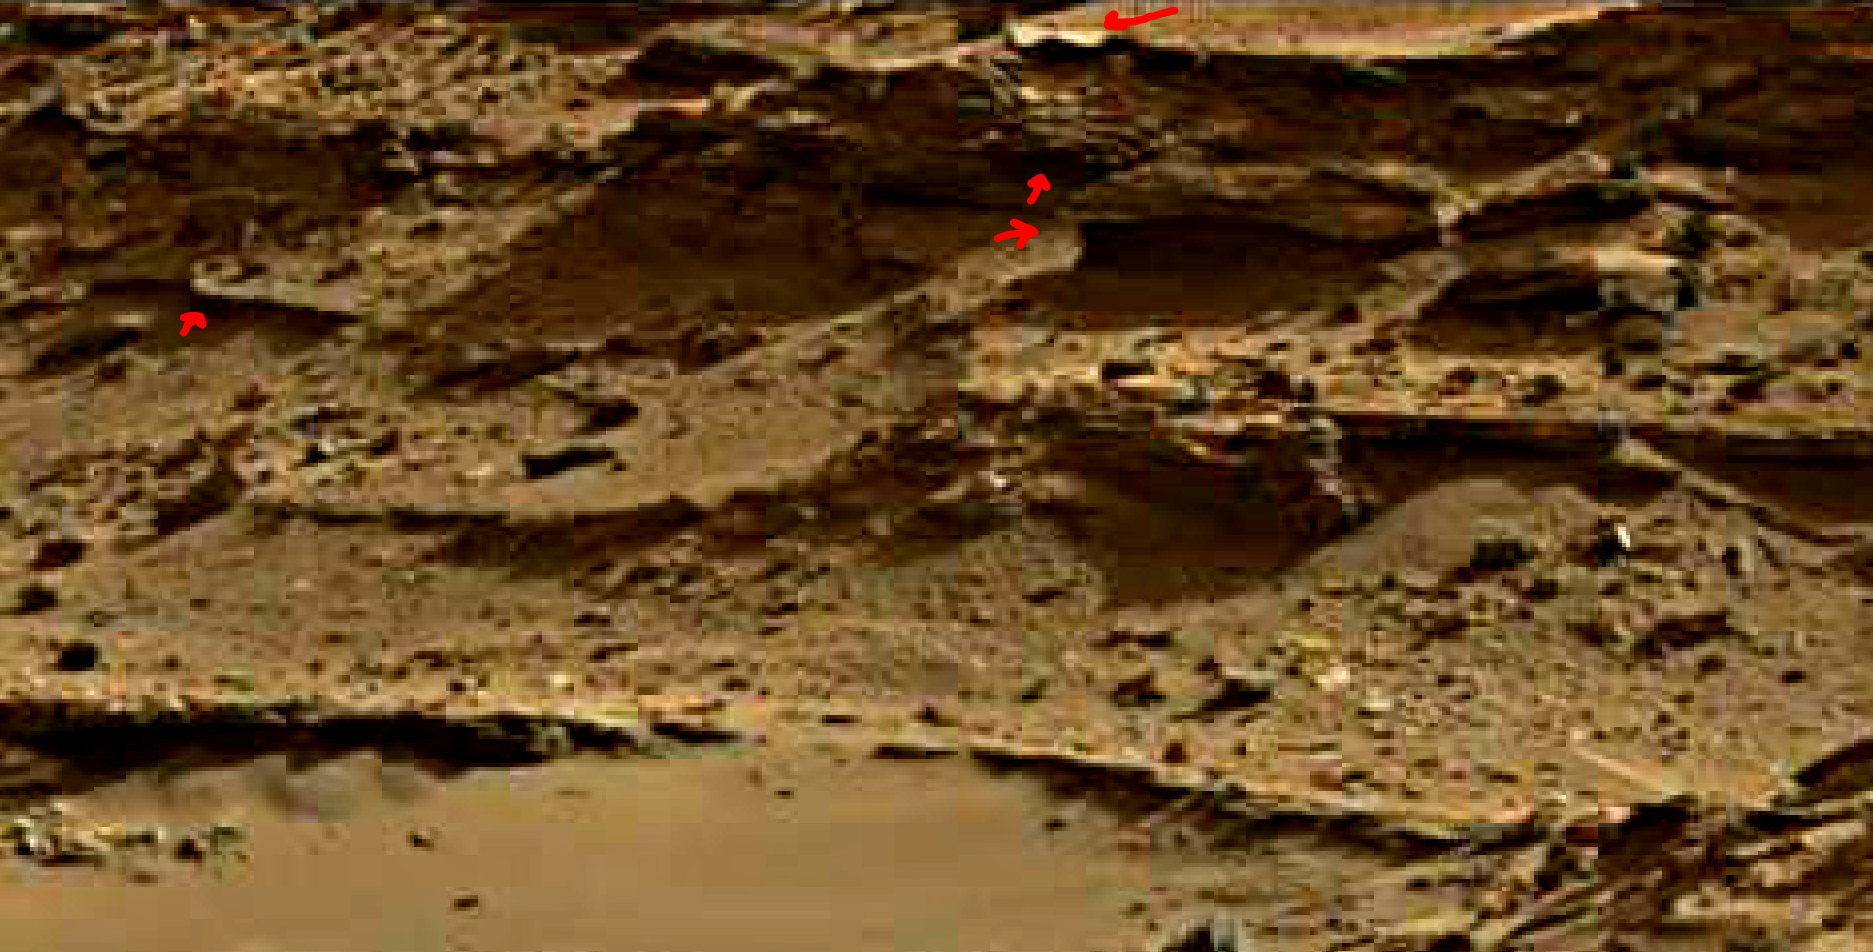 mars sol 1376 anomaly-artifacts 5a was life on mars